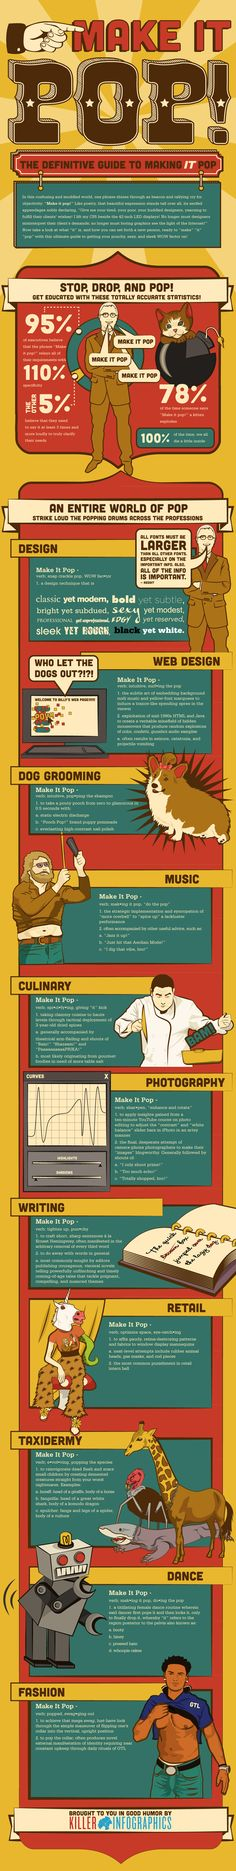 """The Definitive Guide To """"Making It Pop"""" (infographic)"""